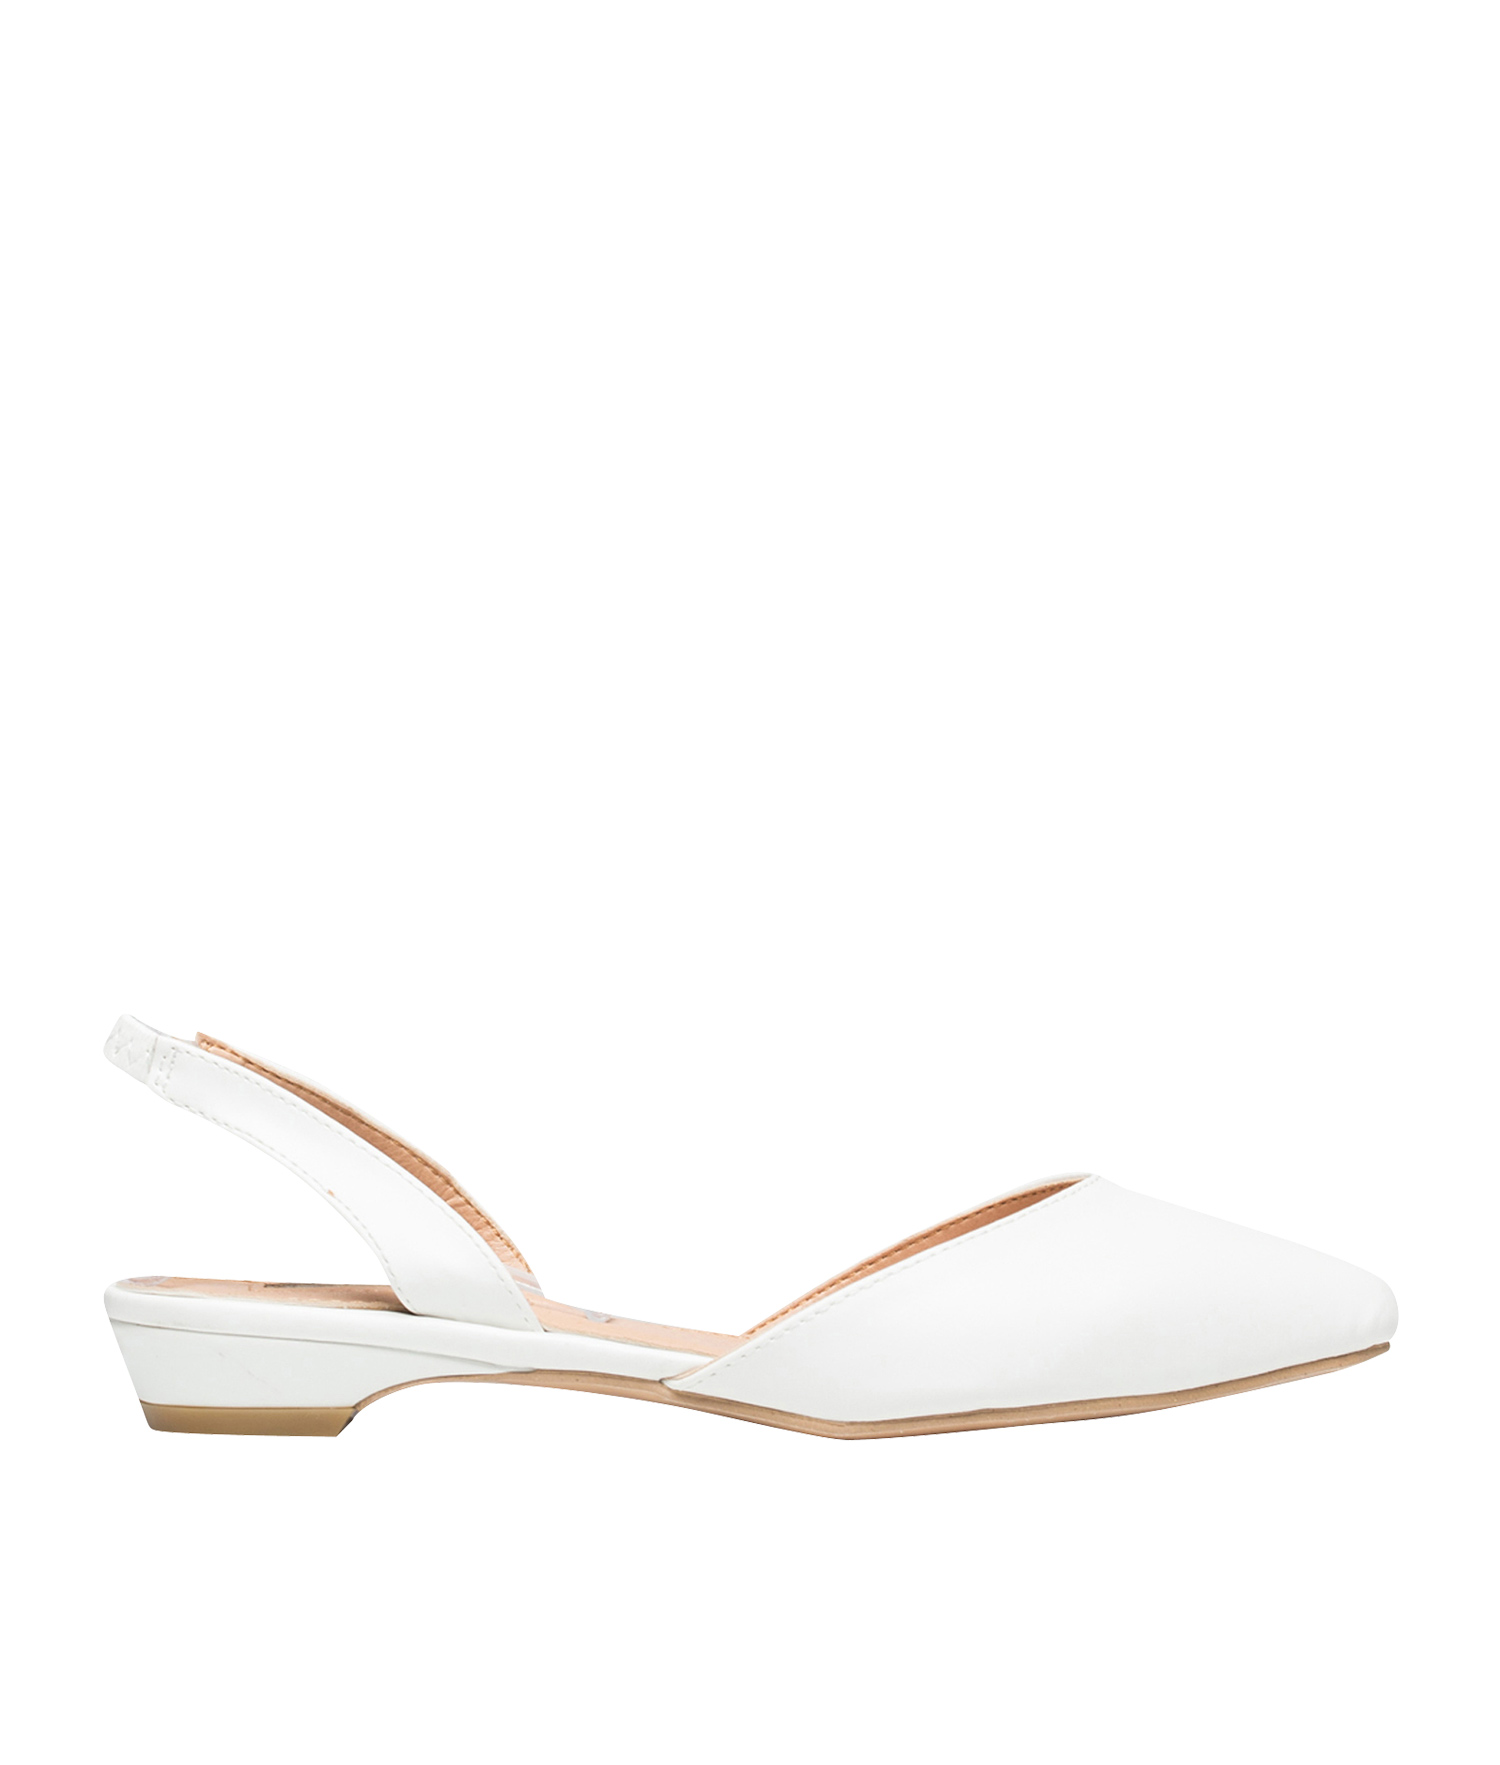 0def4f3c6bee AnnaKastle Womens Pointy Toe d Orsay Slingback Flats White